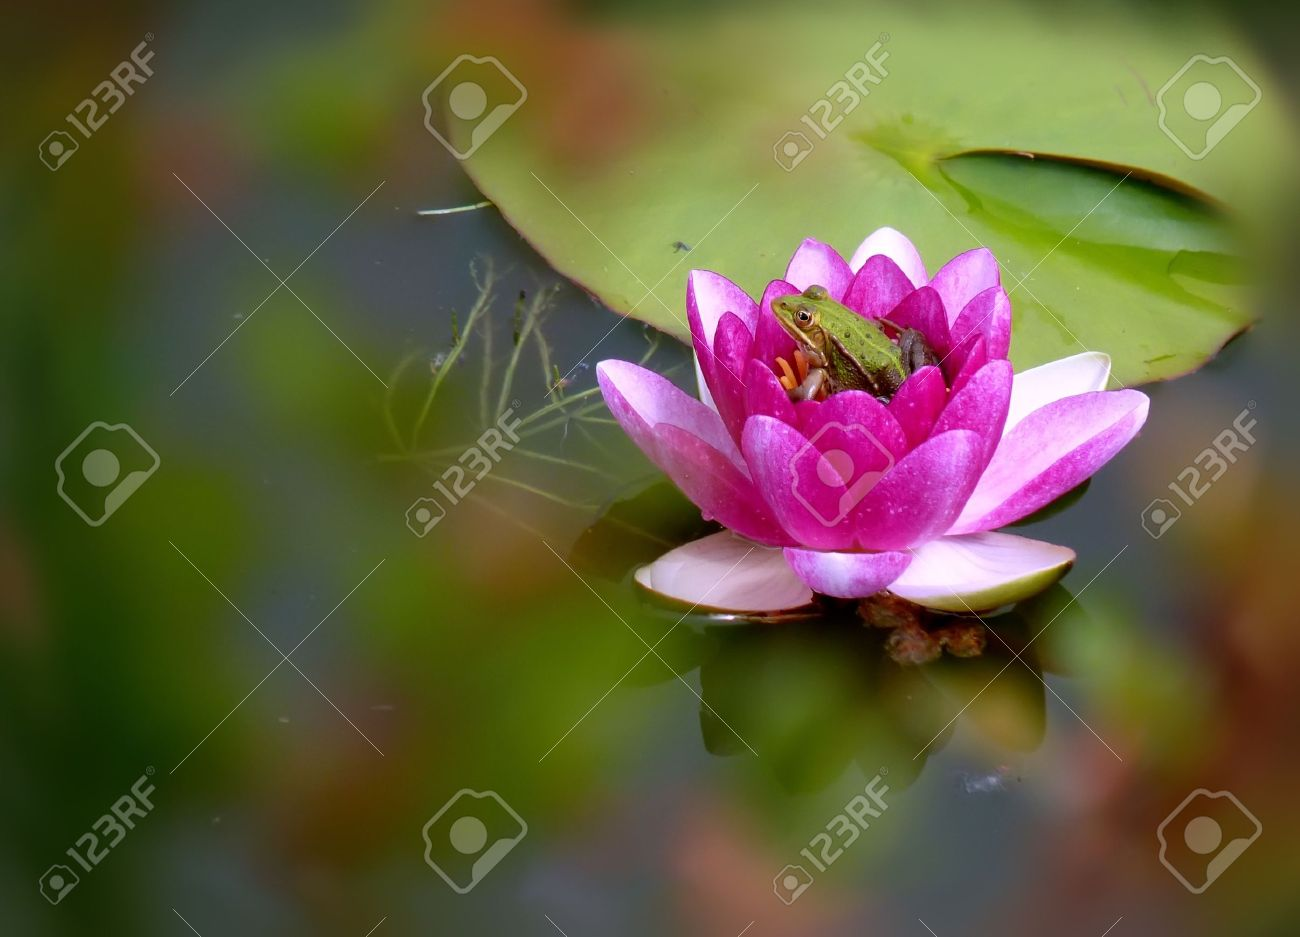 Frog Sitting In A Pink Flower Of Water Lilly Stock Photo Picture